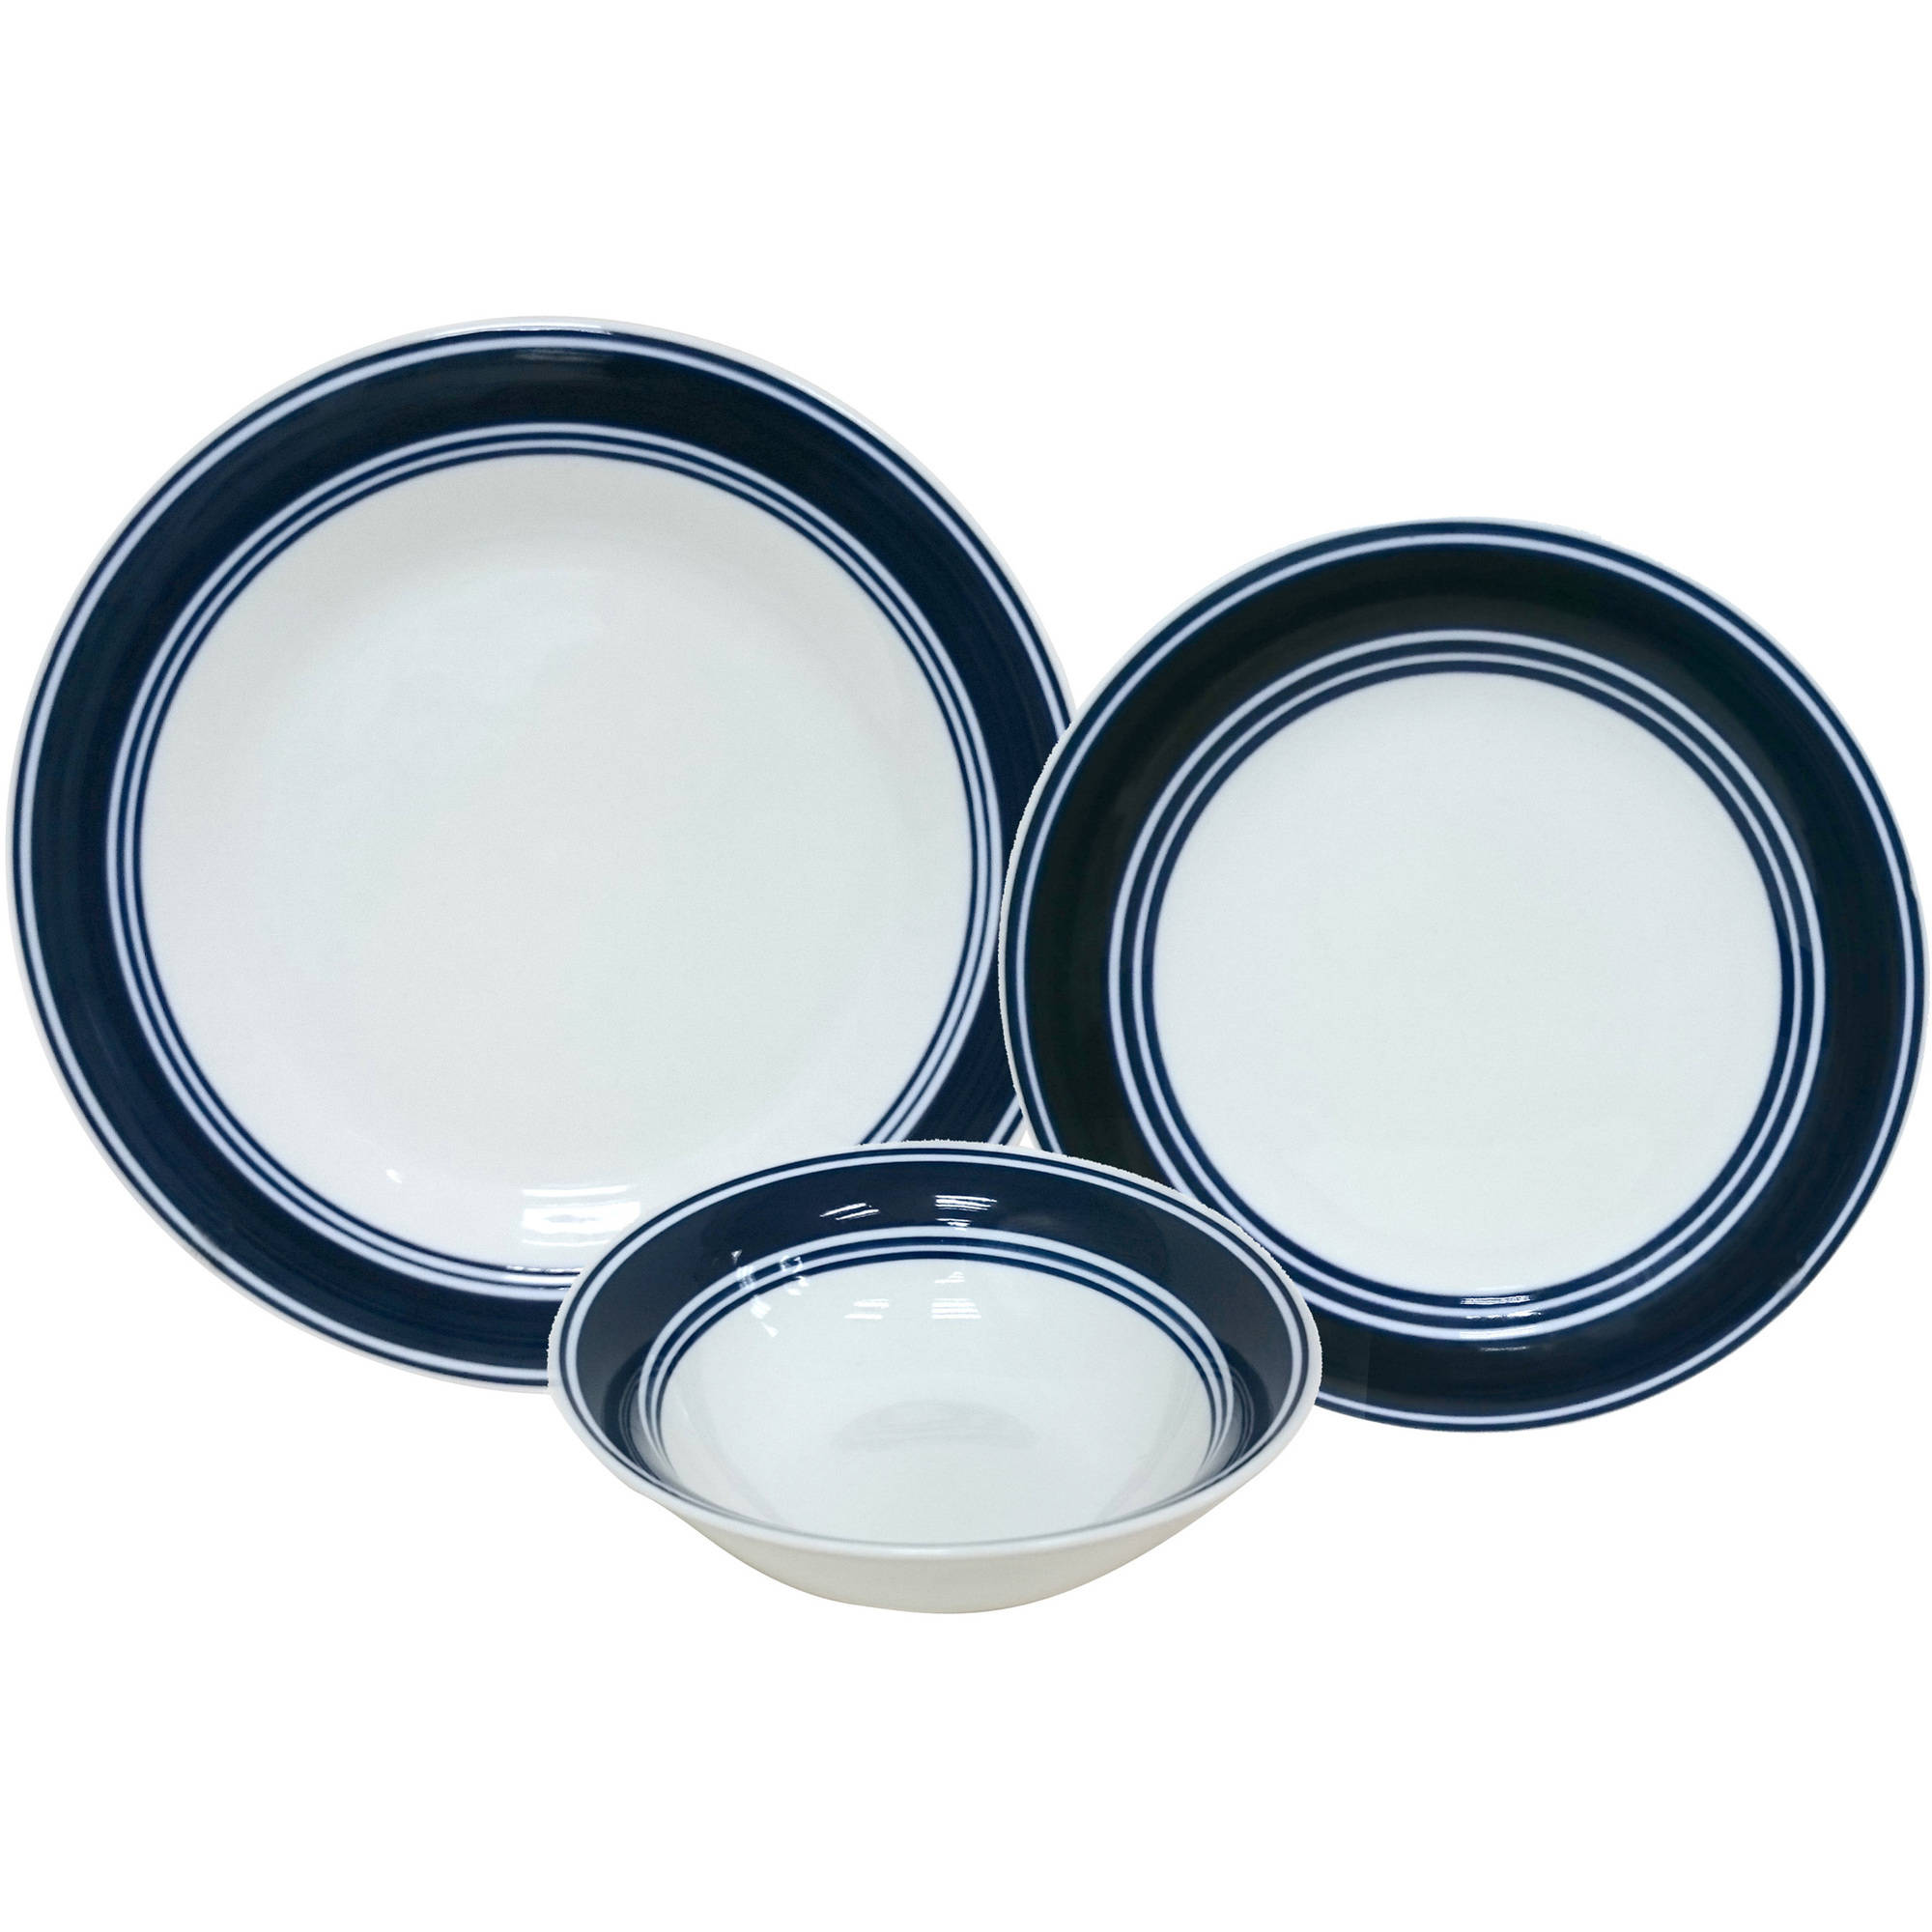 Mainstays Blue Banded 12 Piece Dinnerware Set